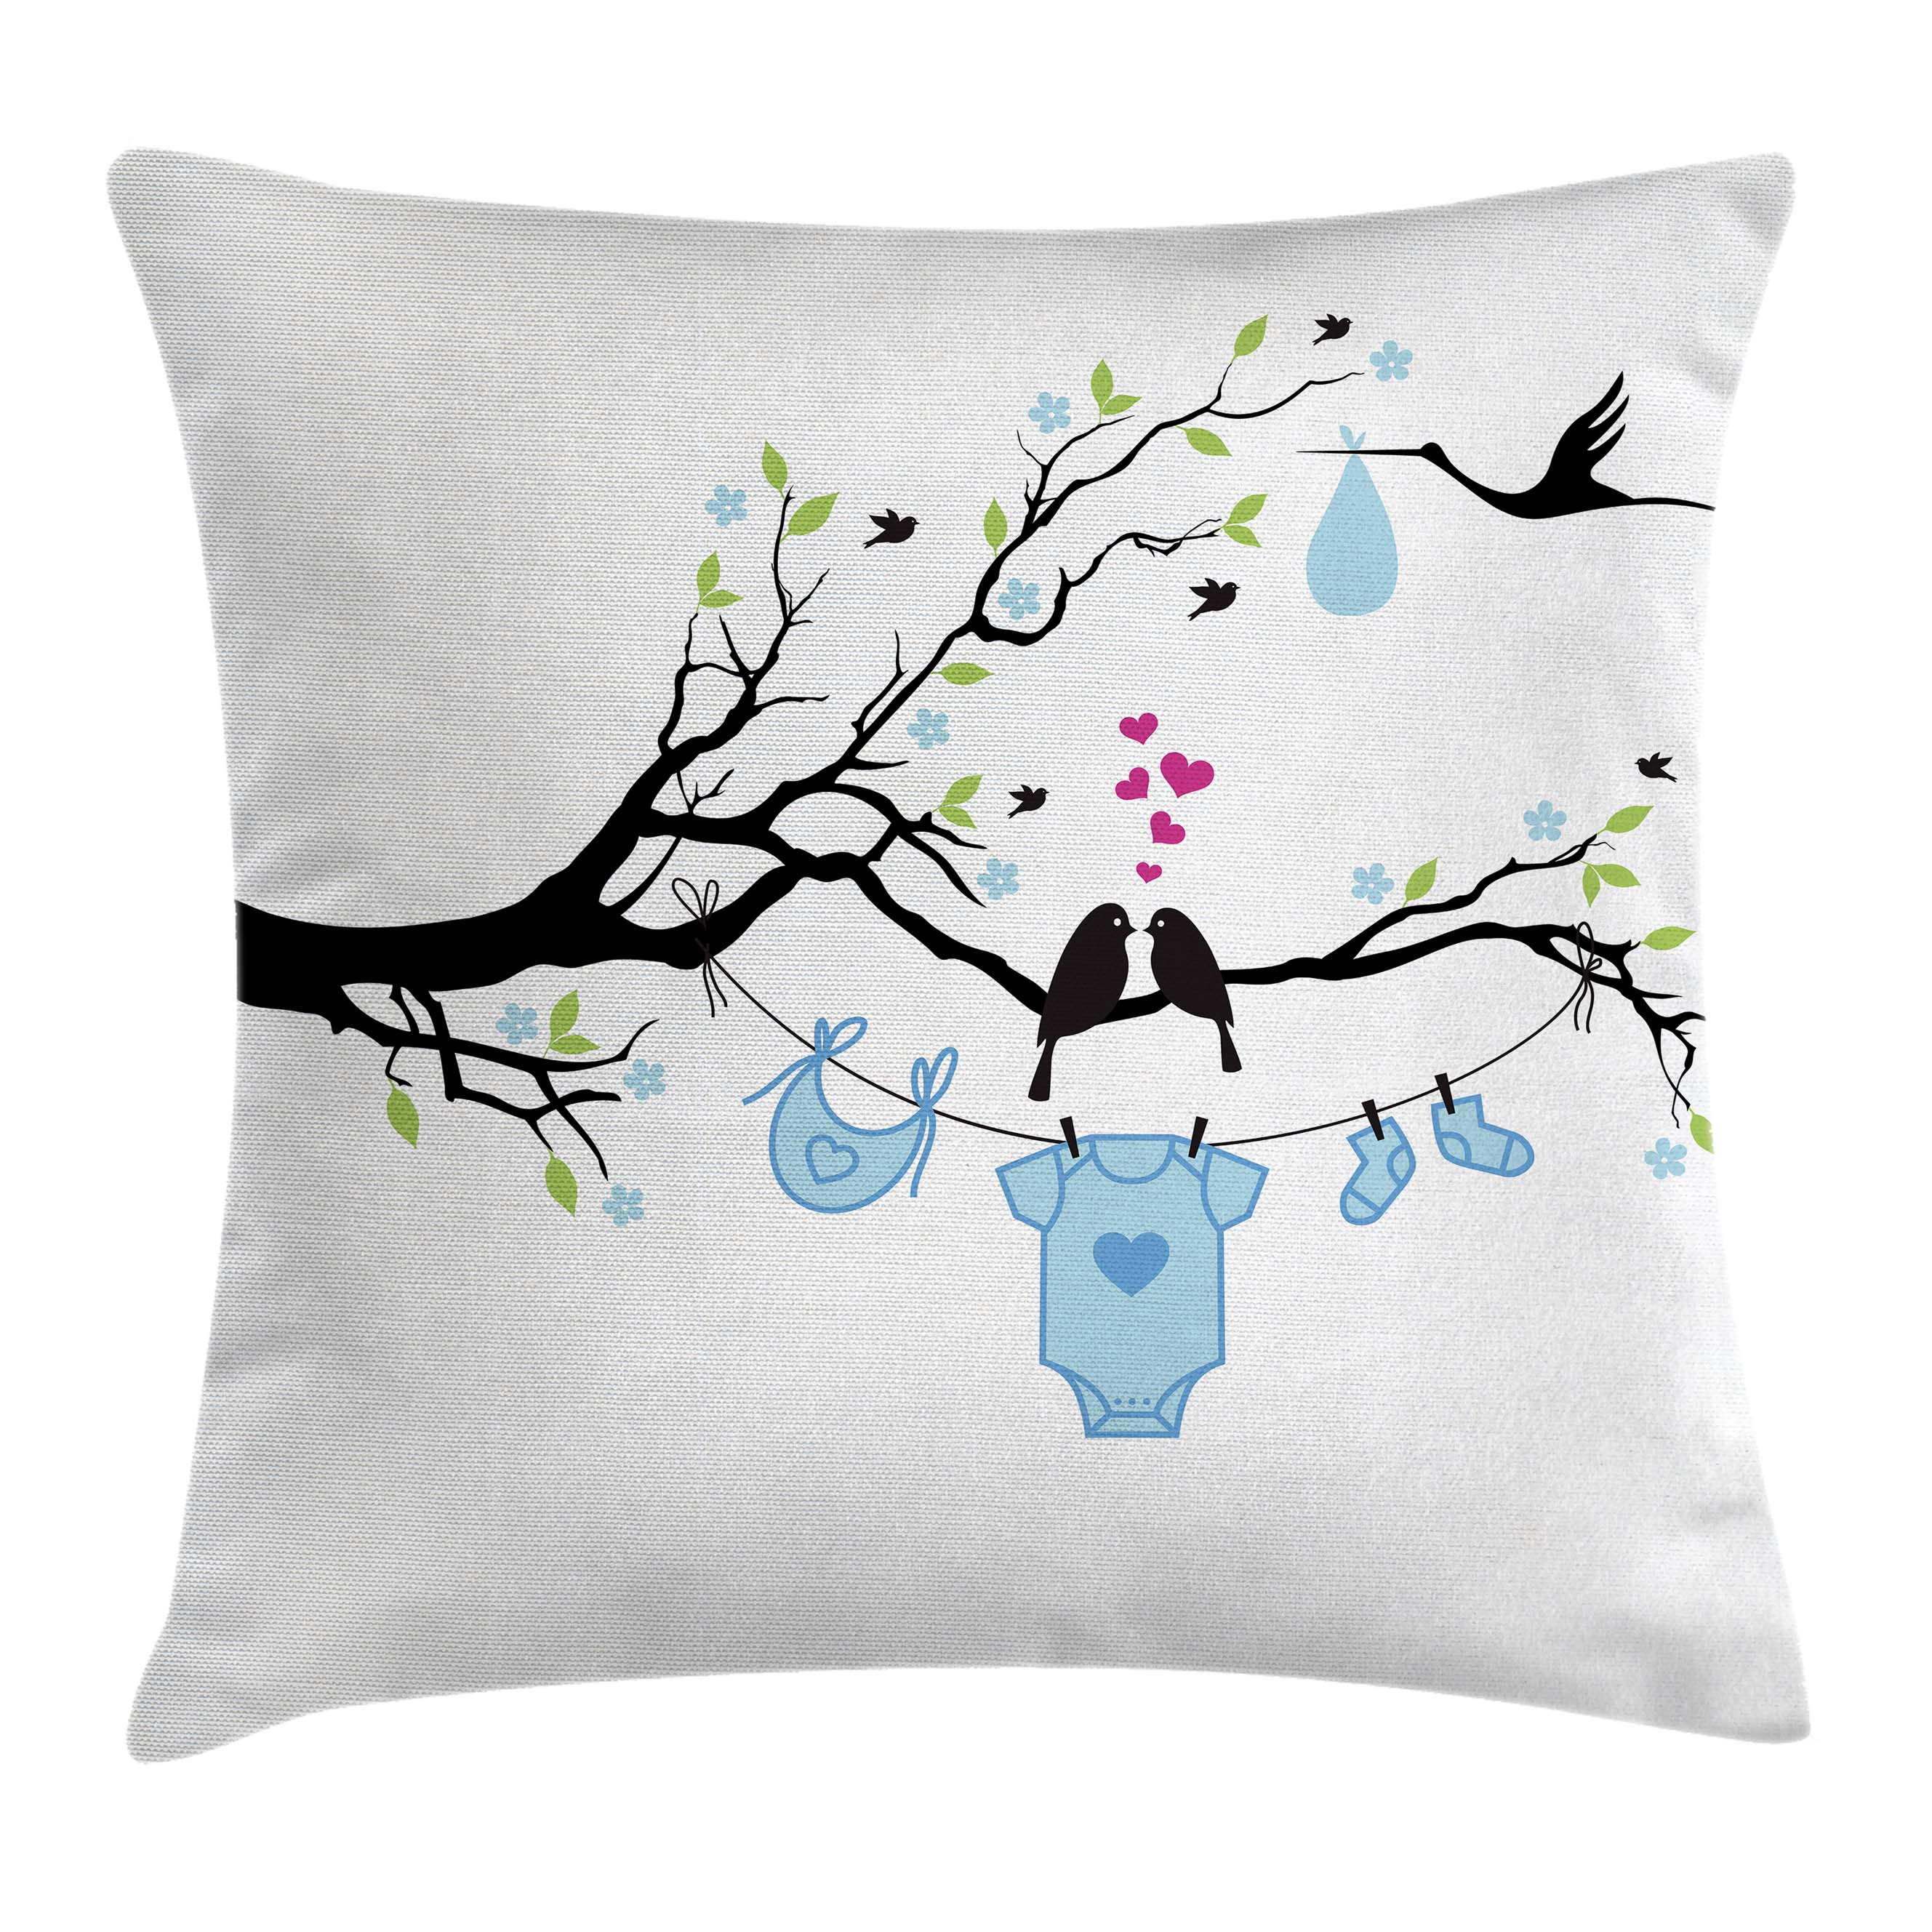 Gender Reveal Decorations Throw Pillow Cushion Cover, Love Birds on Tree and Child Clothes Hanging Design, Decorative Square Accent Pillow Case, 16 X 16 Inches, Lime Light Blue Black, by Ambesonne